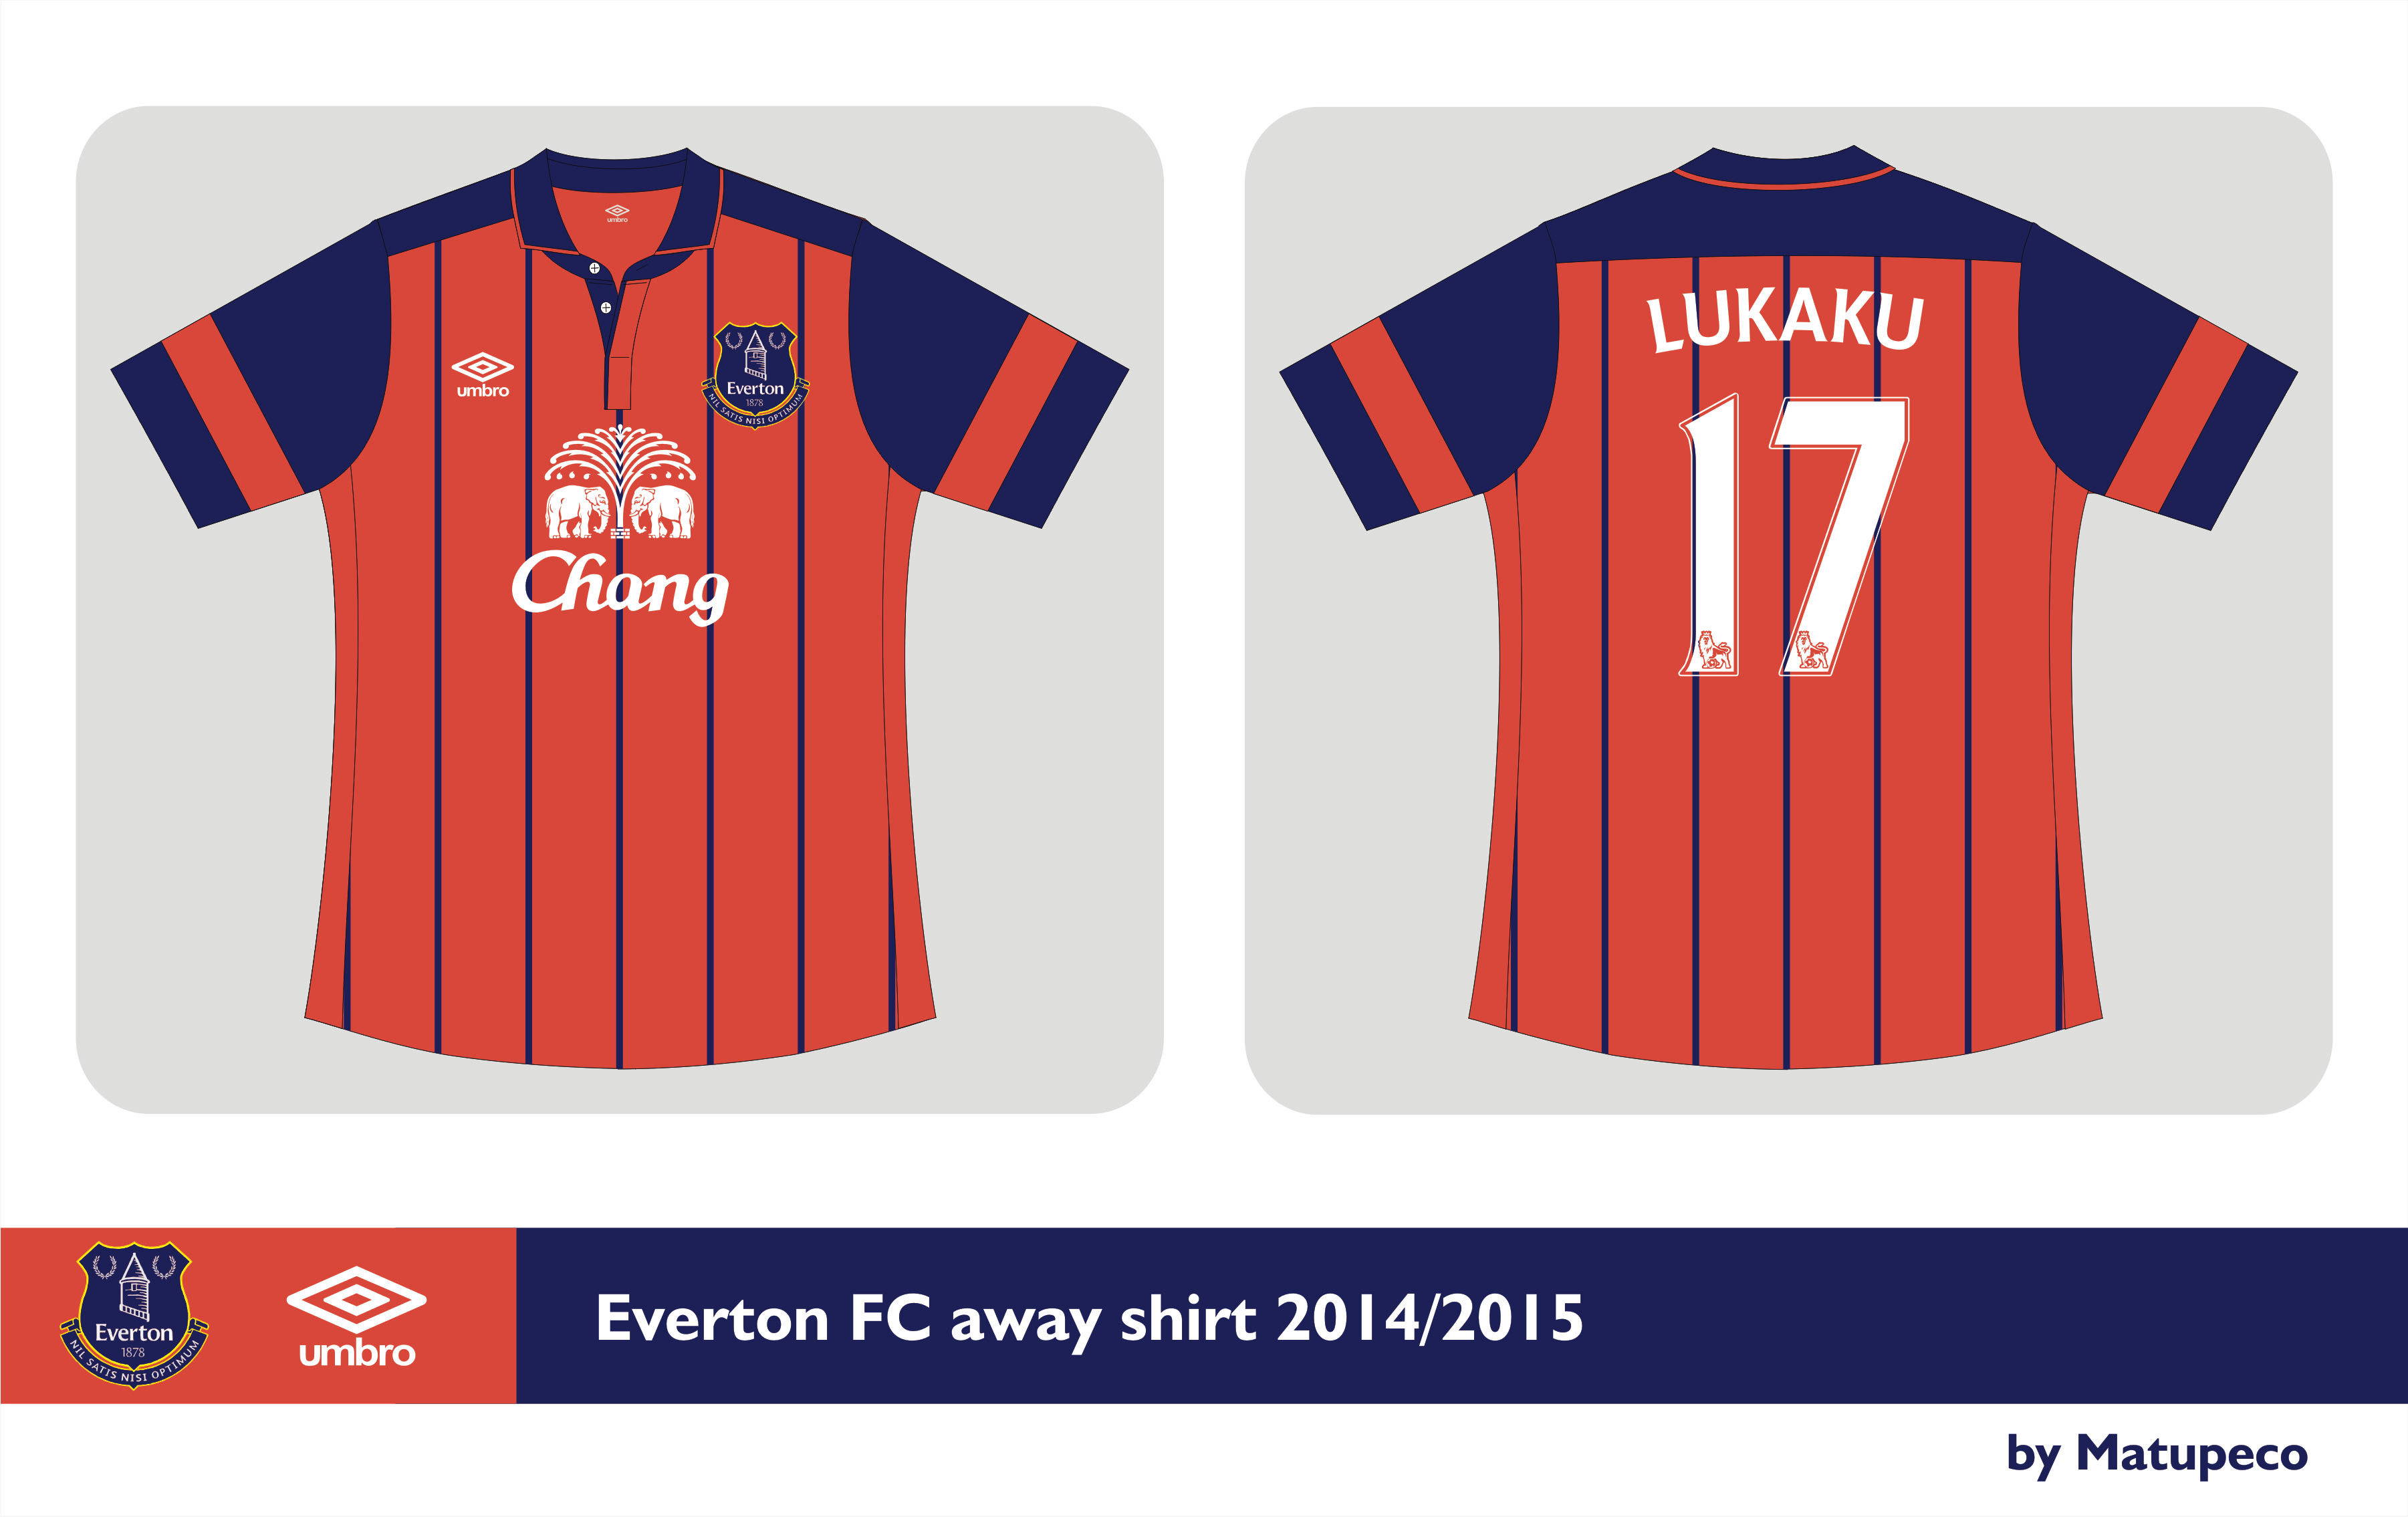 finest selection 3d8b0 4c8fc Everton FC away kit Umbro 2014/2015 - Prediction